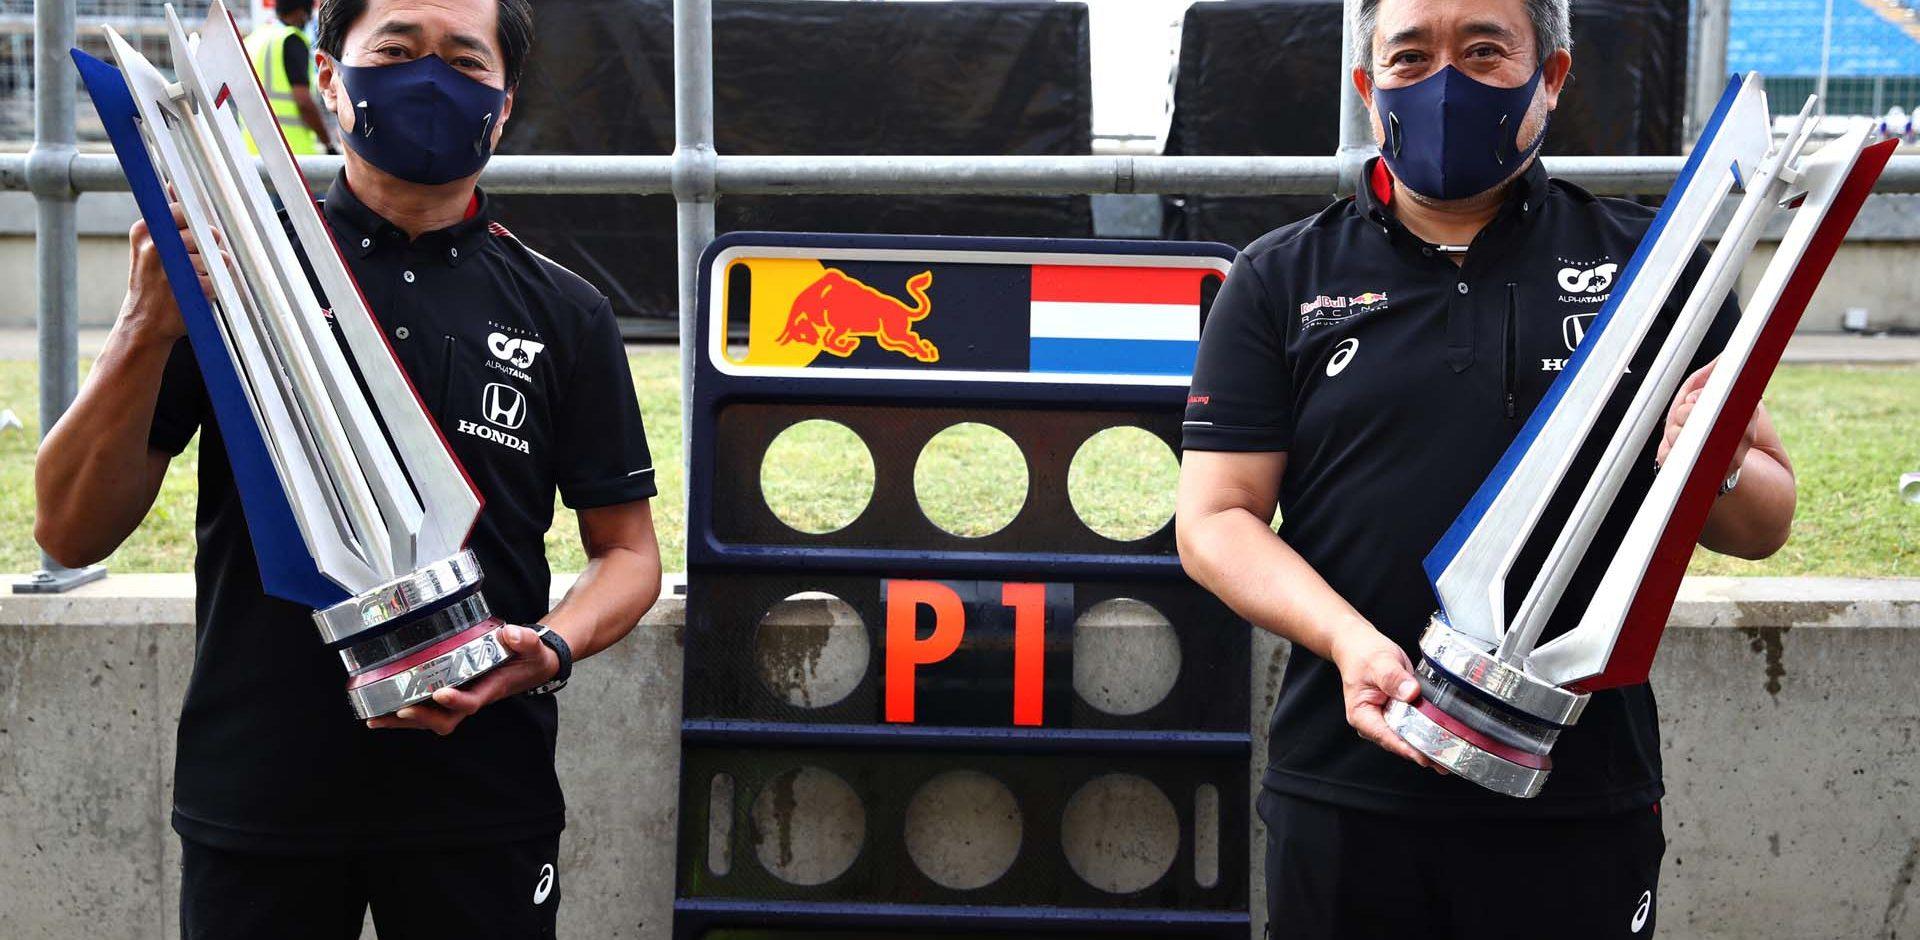 NORTHAMPTON, ENGLAND - AUGUST 09: Toyoharu Tanabe of Honda and Masashi Yamamoto of Honda celebrate the win of Max Verstappen of Netherlands and Red Bull Racing after the F1 70th Anniversary Grand Prix at Silverstone on August 09, 2020 in Northampton, England. (Photo by Mark Thompson/Getty Images) // Getty Images / Red Bull Content Pool  // AP-24VZHS93H1W11 // Usage for editorial use only //